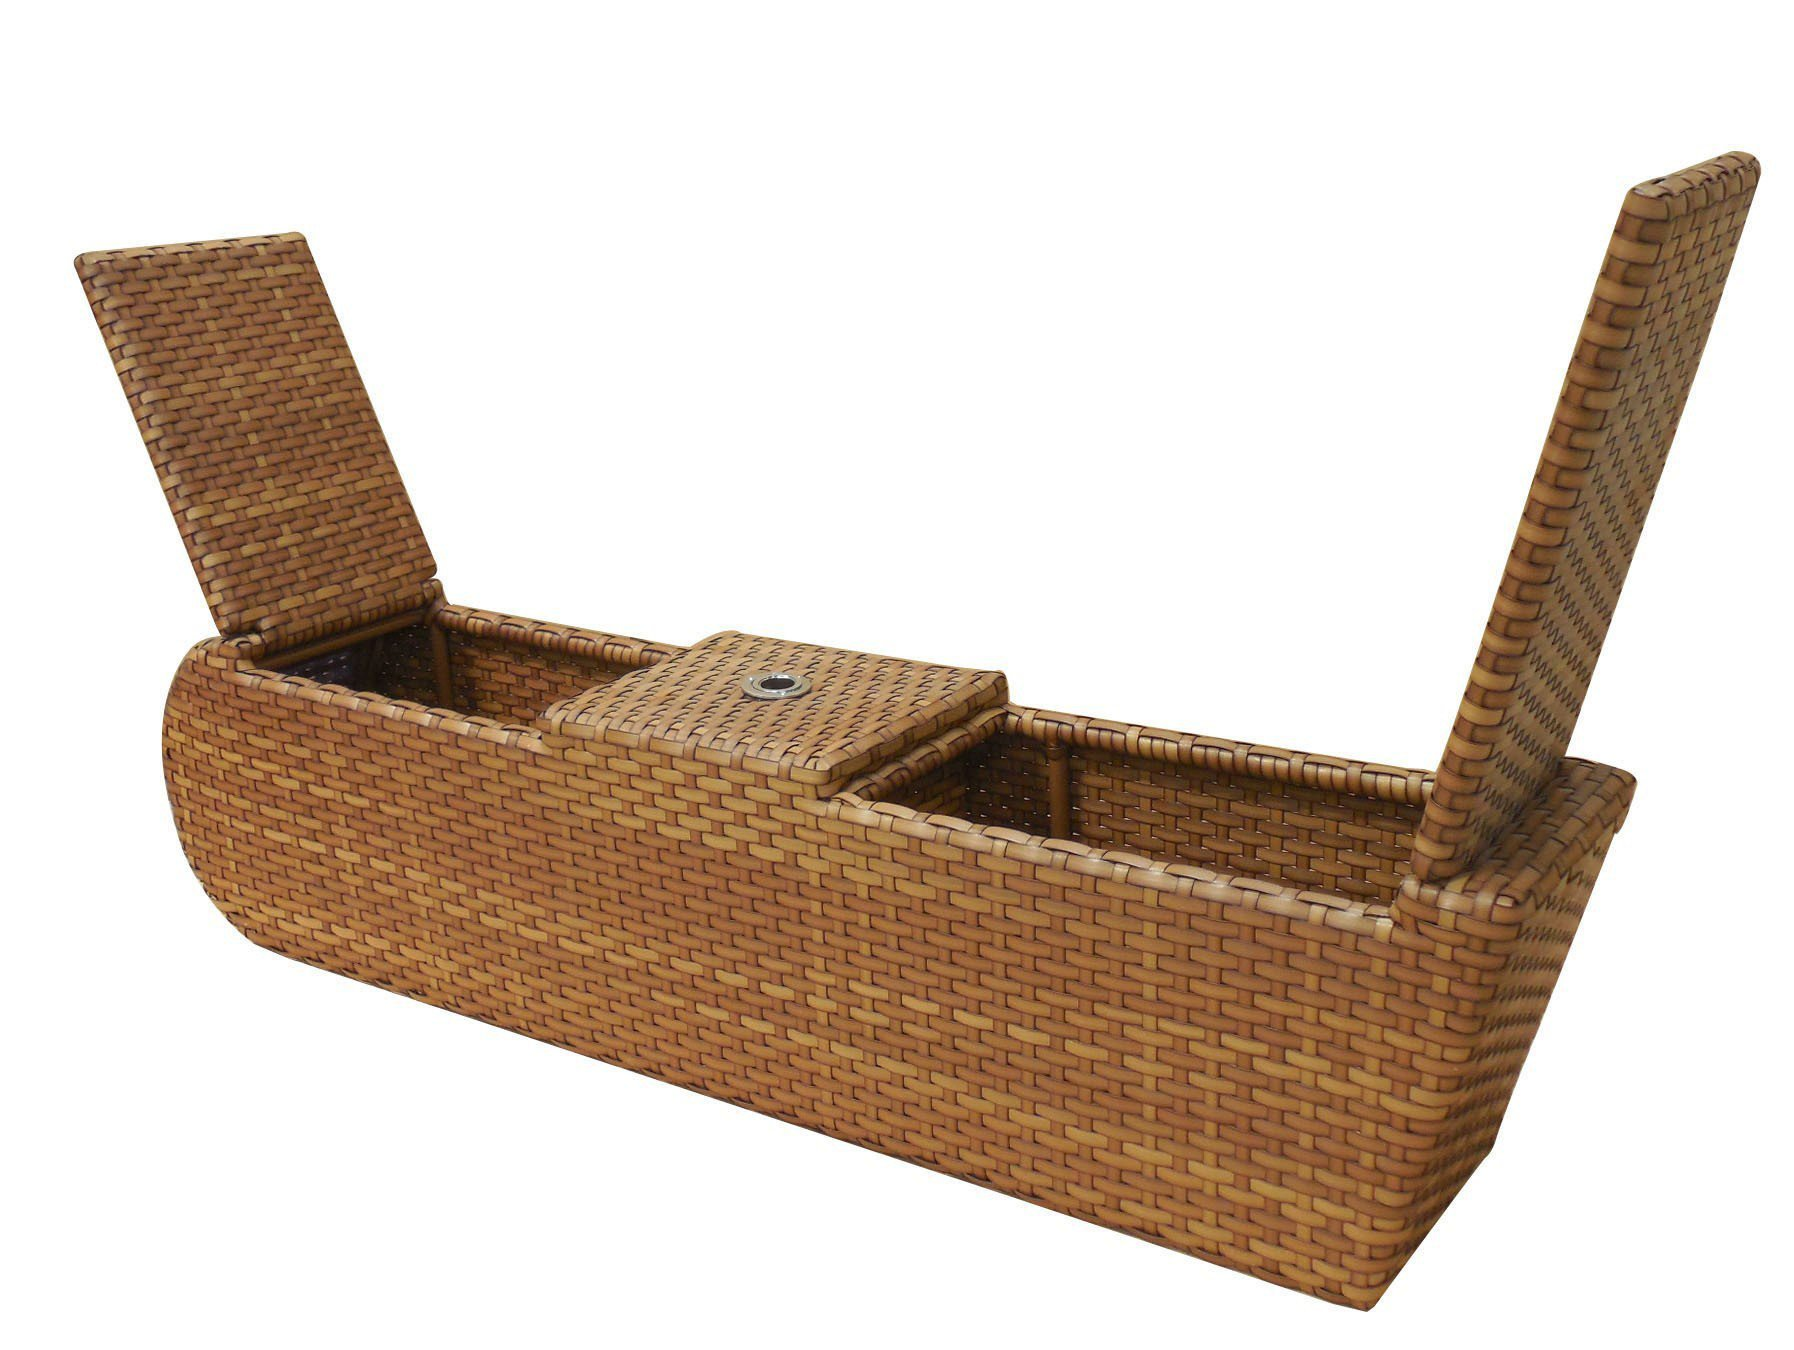 Relax Doppelliege Mbm Living Doppelliege Relax Lounge Geflecht Tobacco